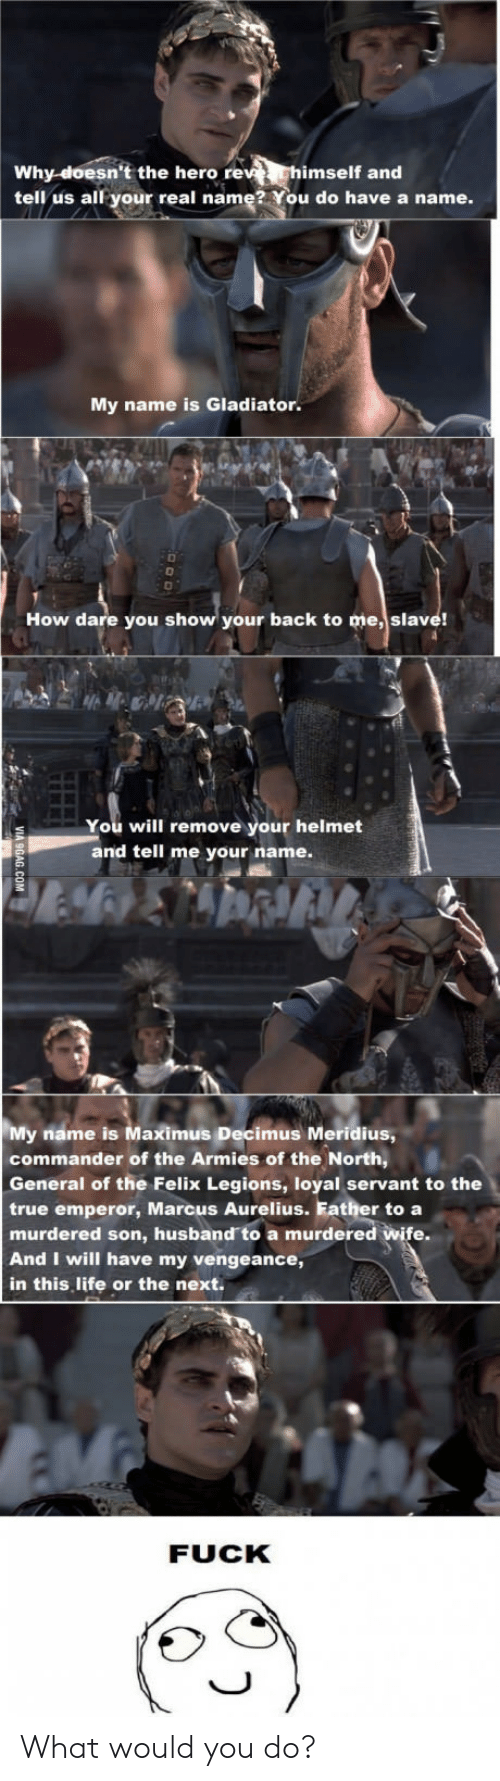 Gladiator: Why-doesn't the hero re  imself and  tell us all your real name? You do have a name.  My name is Gladiator.  How dare you show your back to me, slave!  You will remove your helmet  and tell me your name.  My name is Maximus Decimus Meridius  commander of the Armies of the North,  General of the Felix Legions, loyal servant to the  true emperor, Marcus Aurelius. Father to a  murdered son, husband to a murdered wife  And I will have my vengeance,  in this, life or the next.  FUCK What would you do?